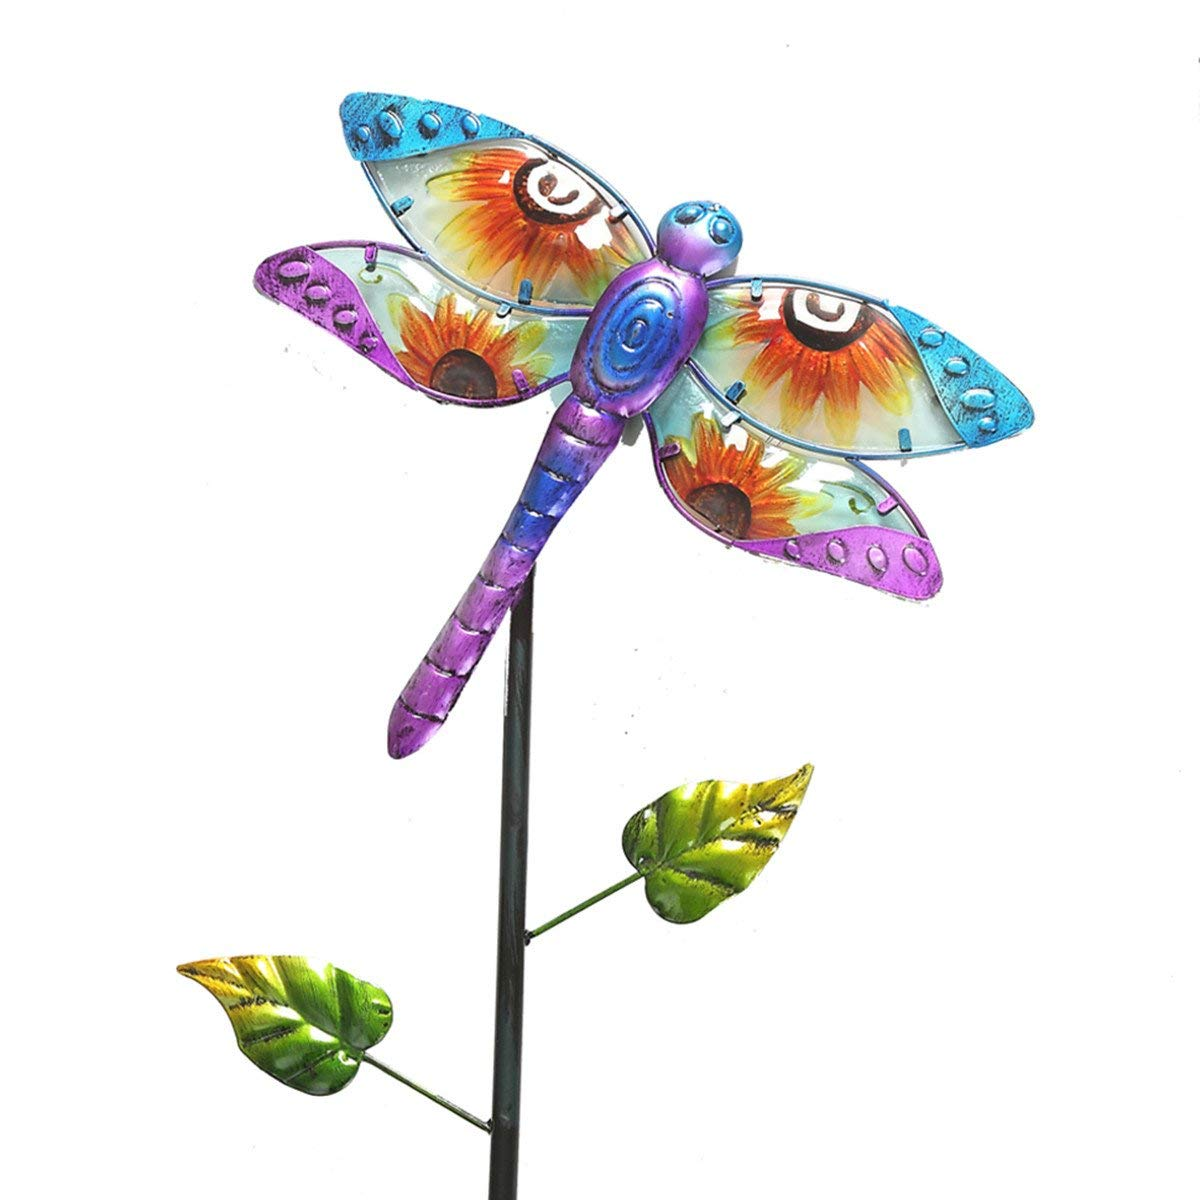 "CEDAR HOME Solar Garden Stake Outdoor Figurine LED Light Cute Metal Stick Art Ornament Decor for Lawn Yard Patio, 11"" W x 2"" D x 52"" H, Dragonfly"